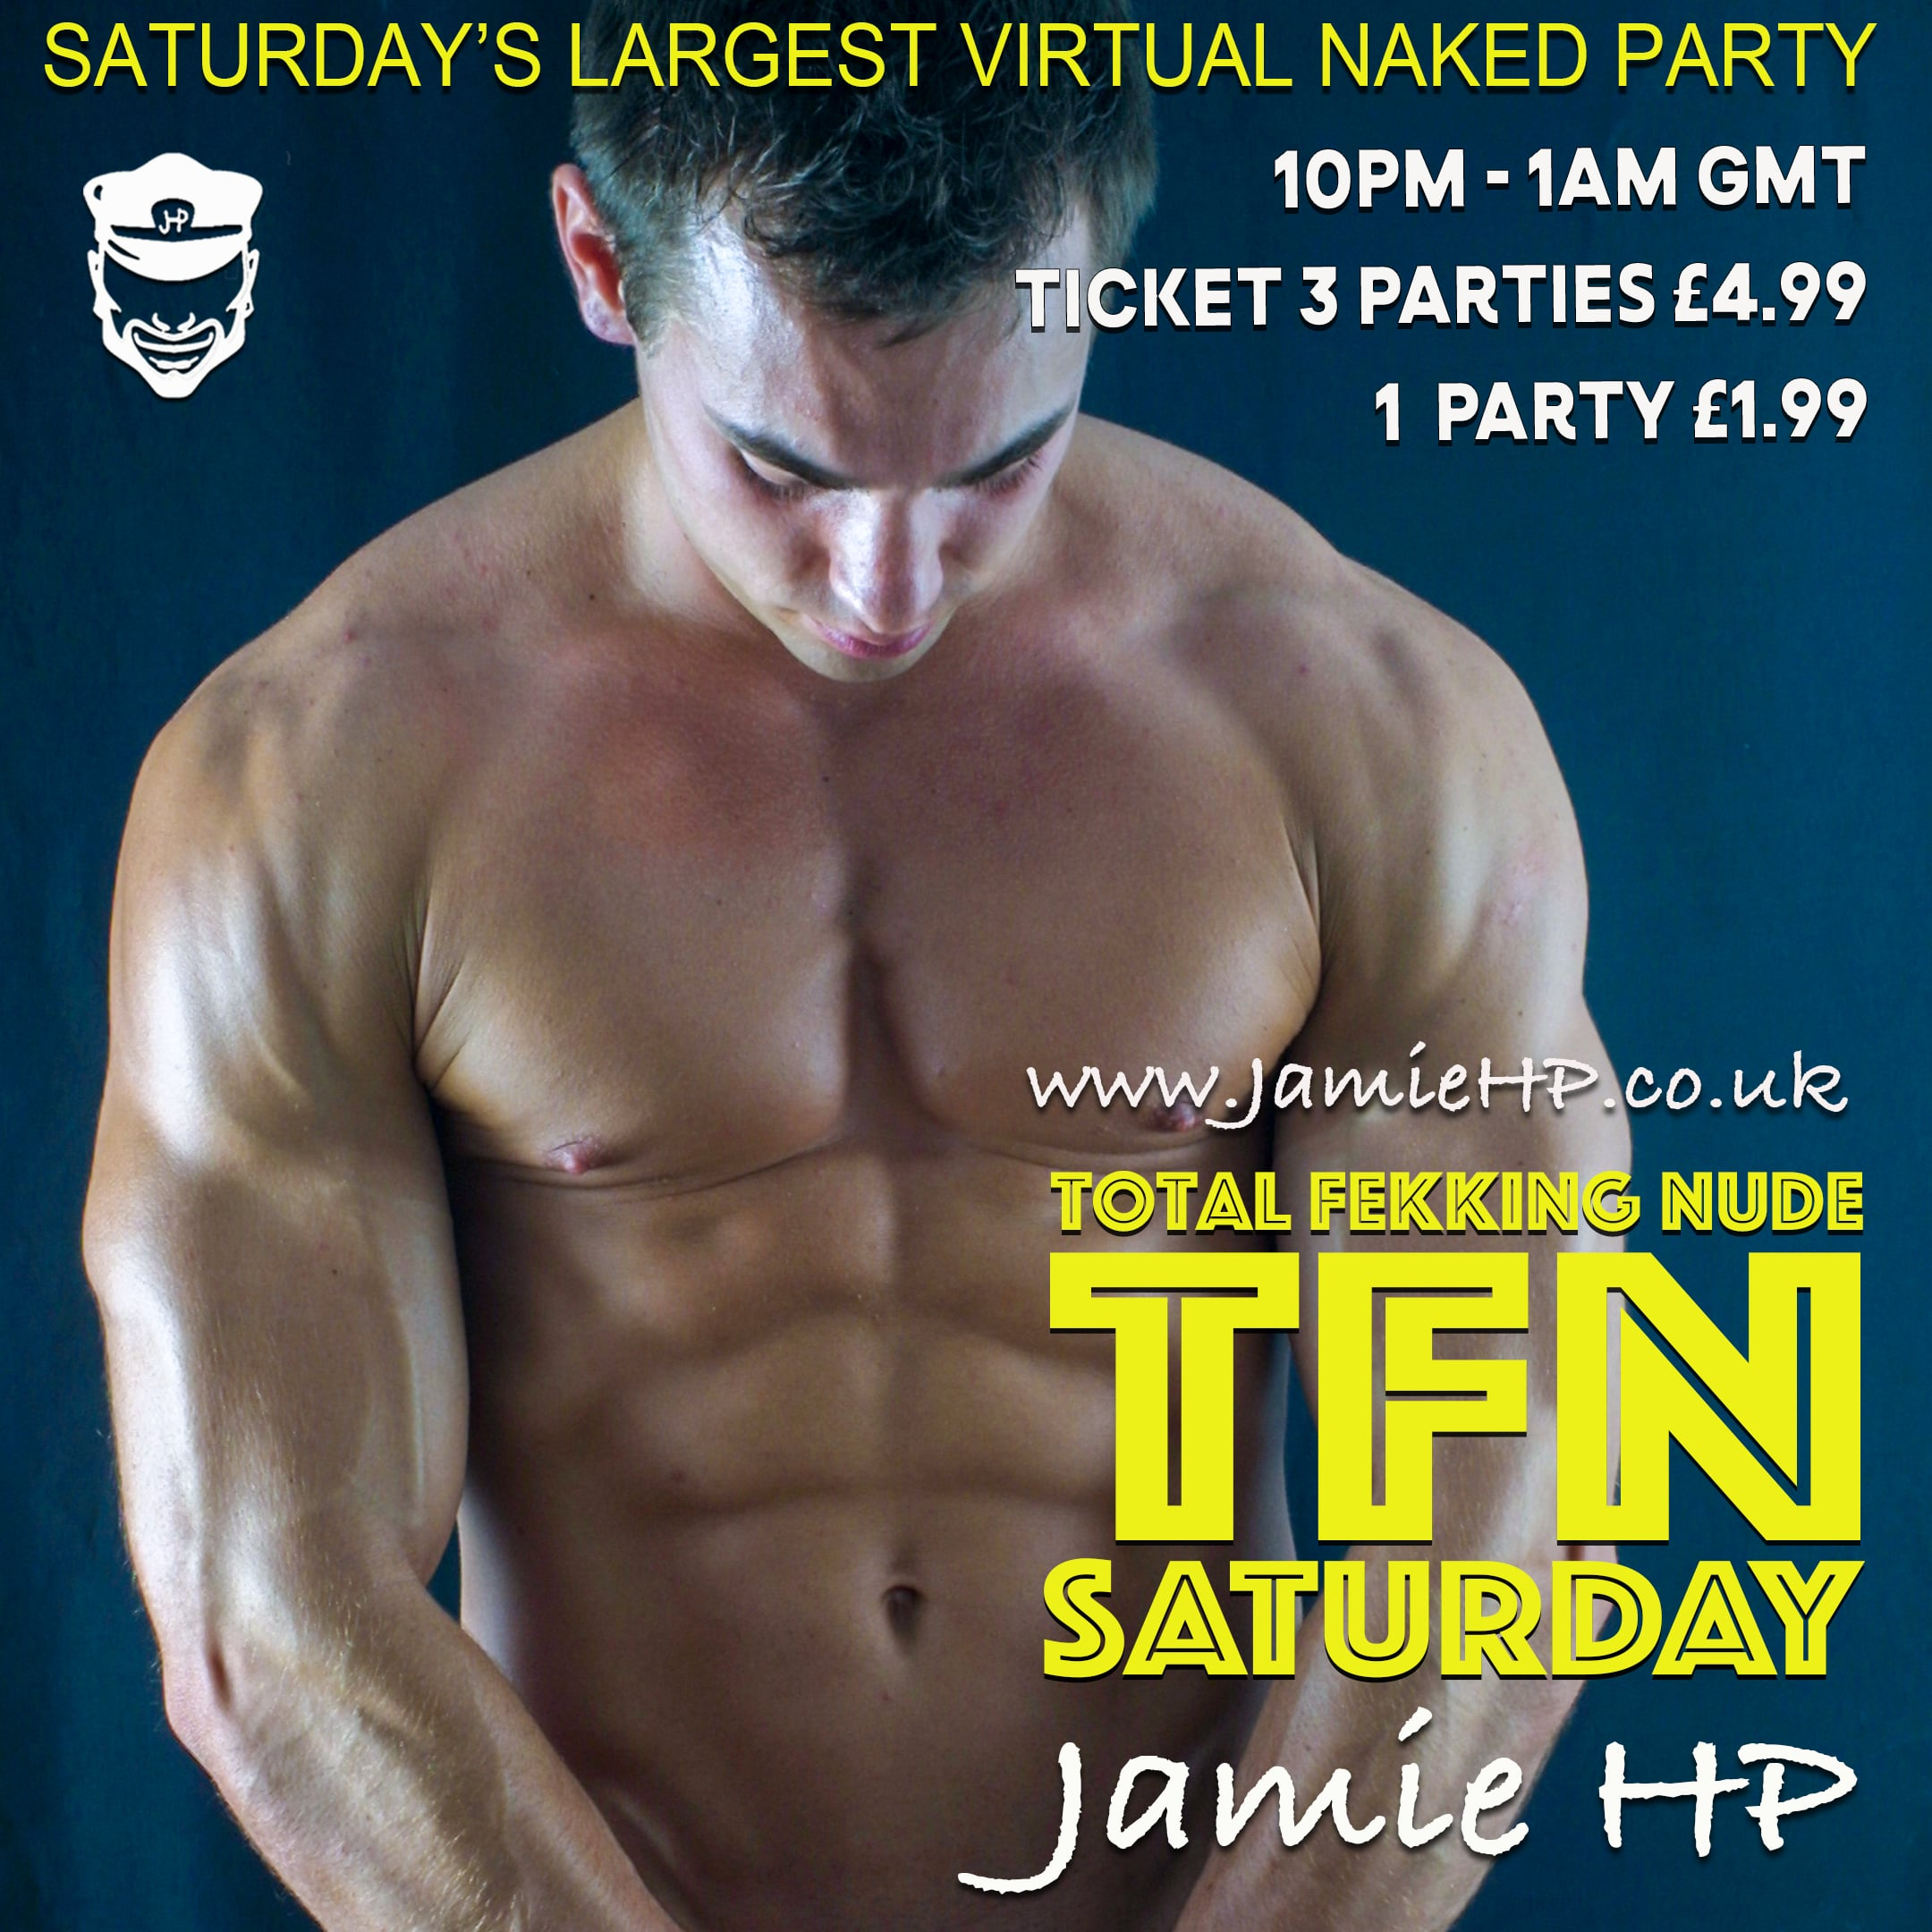 https://www.outsavvy.com/event/4482/virtual-tfn-saturday-tickets